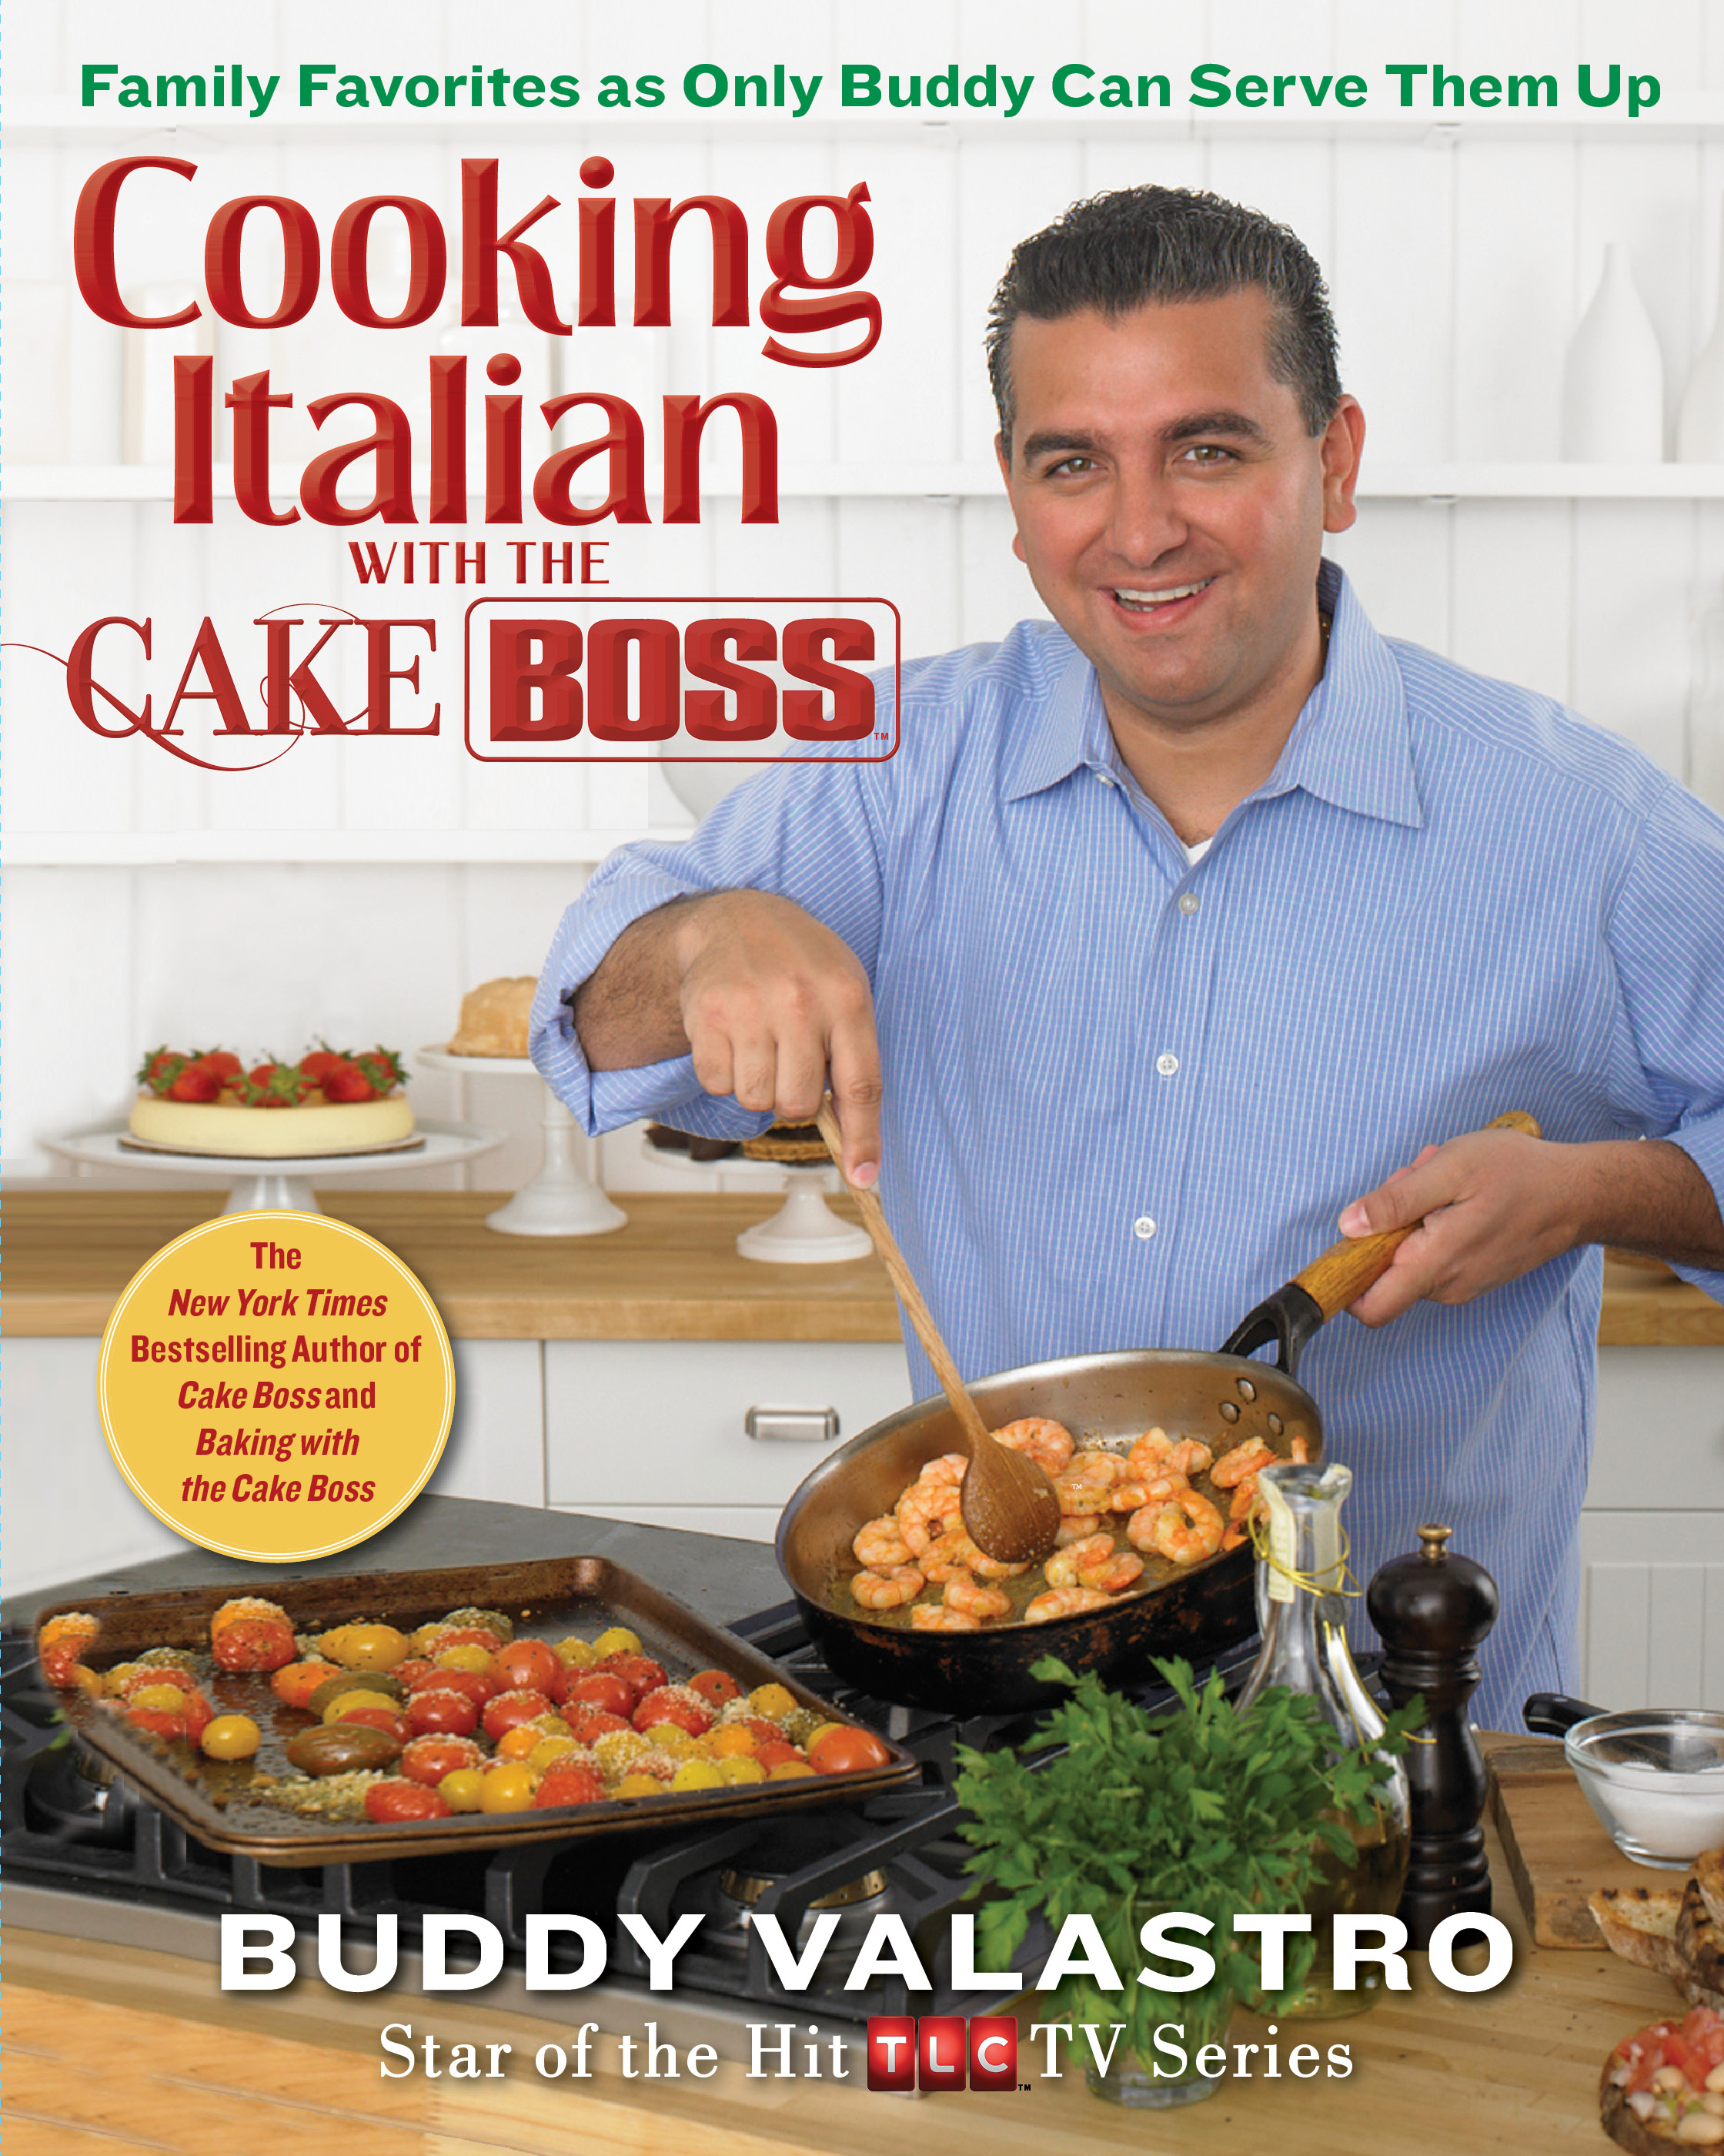 Cooking italian with the cake boss knyv buddy valastro cooking italian with the cake boss family favorites as only buddy can serve them up forumfinder Image collections